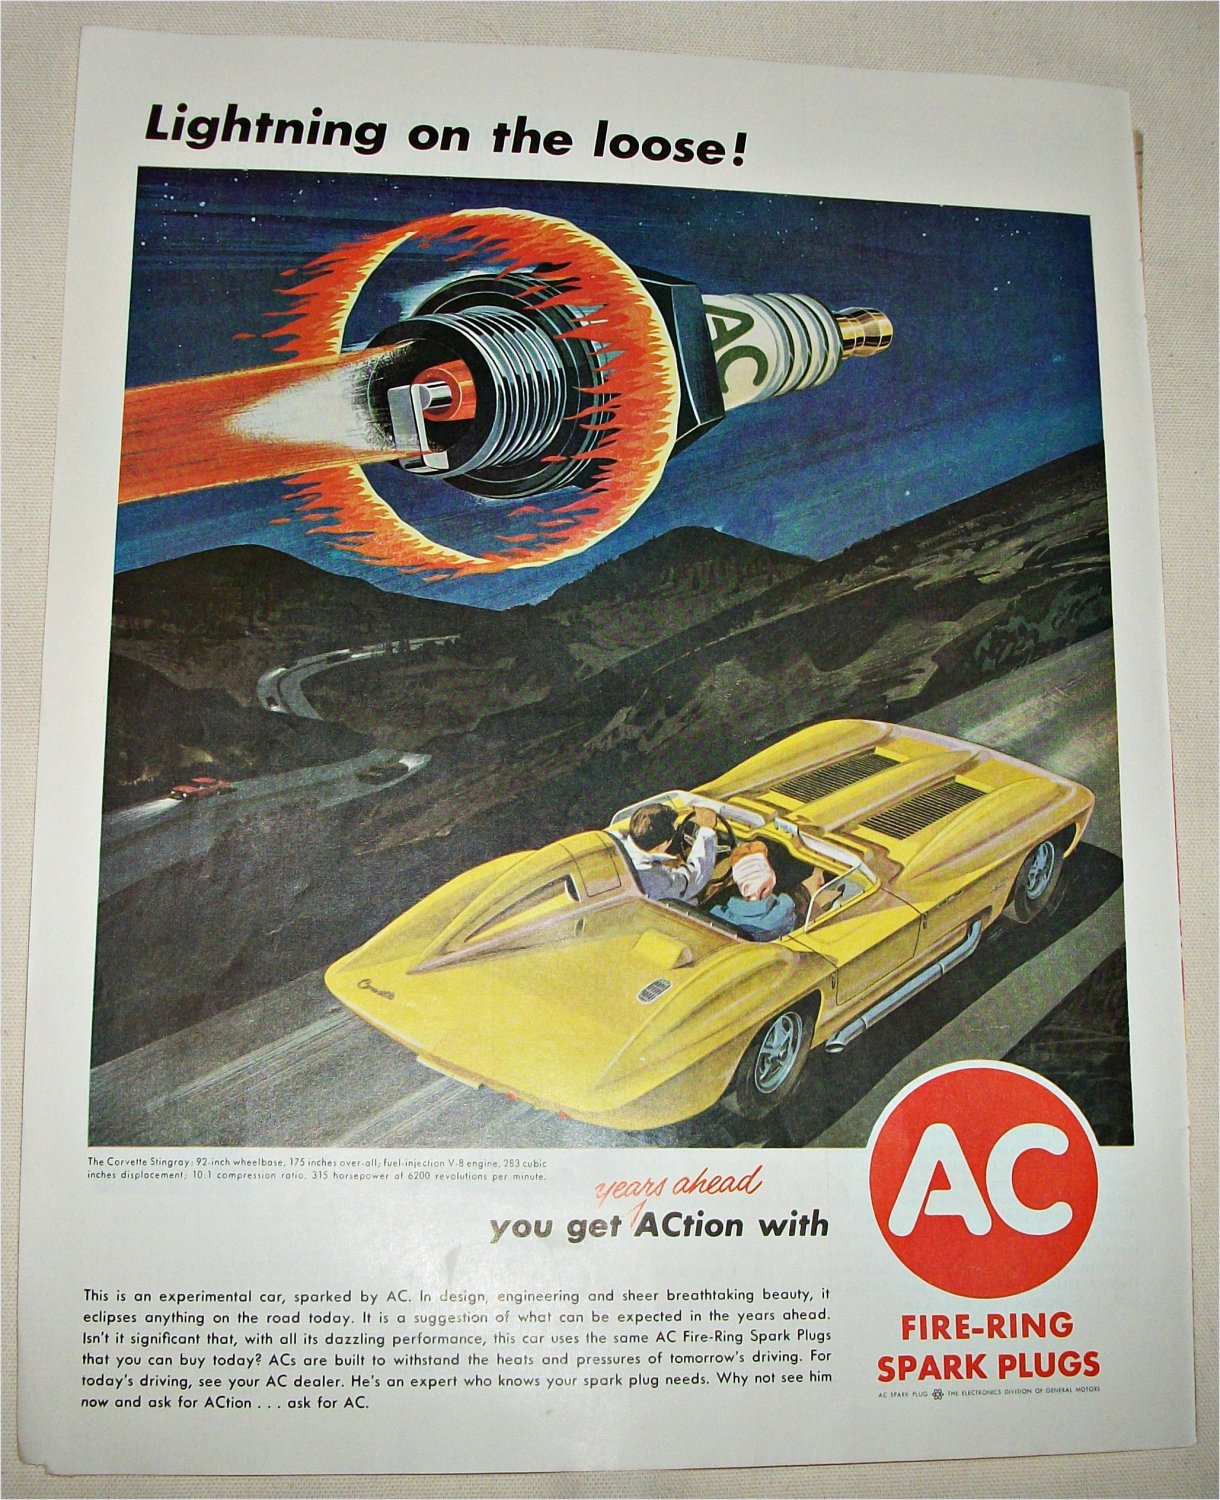 1962 AC Fire-Ring Spark Plugs ad #3 featuring Corvette